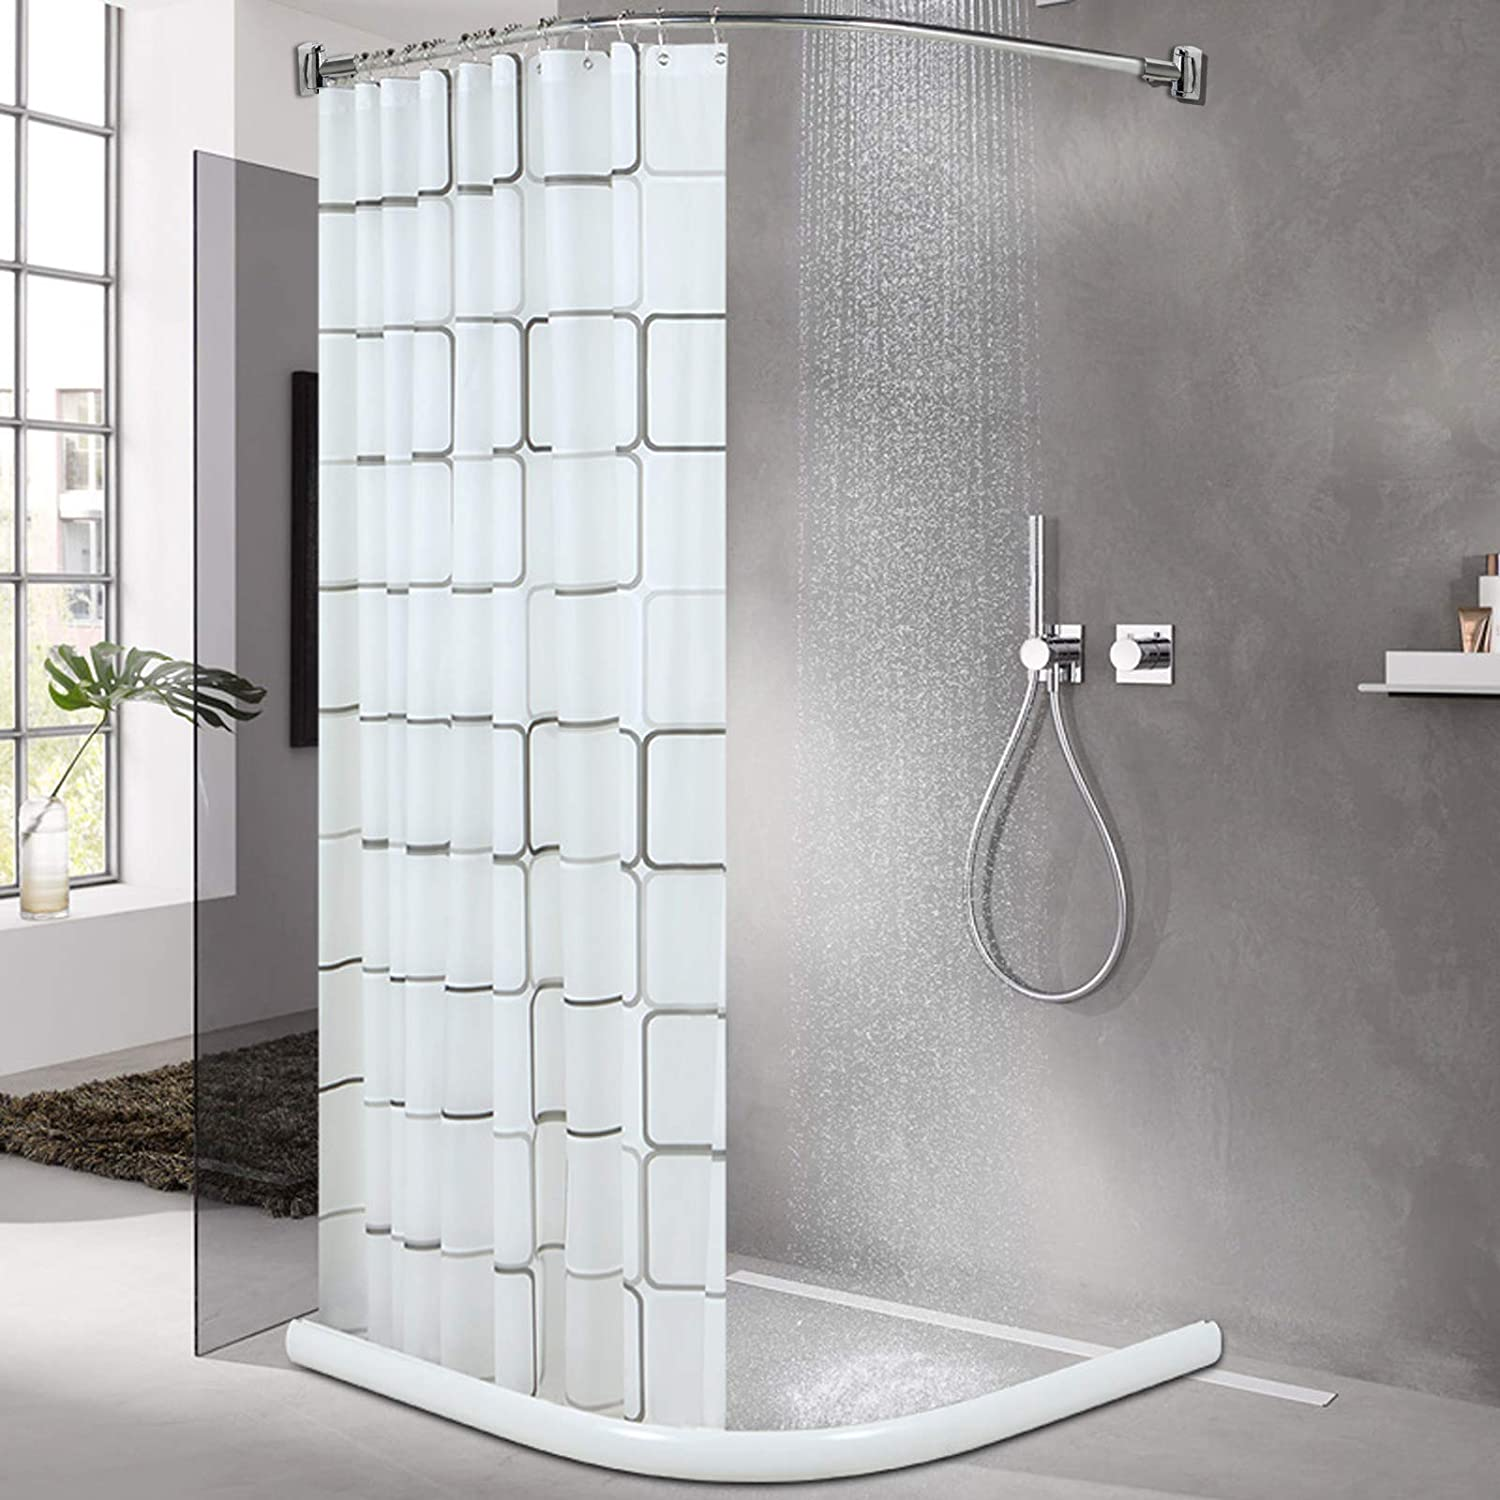 AllRight Reglable Croydex Tringle de Douche Courb/ée 145-200cm//57-78